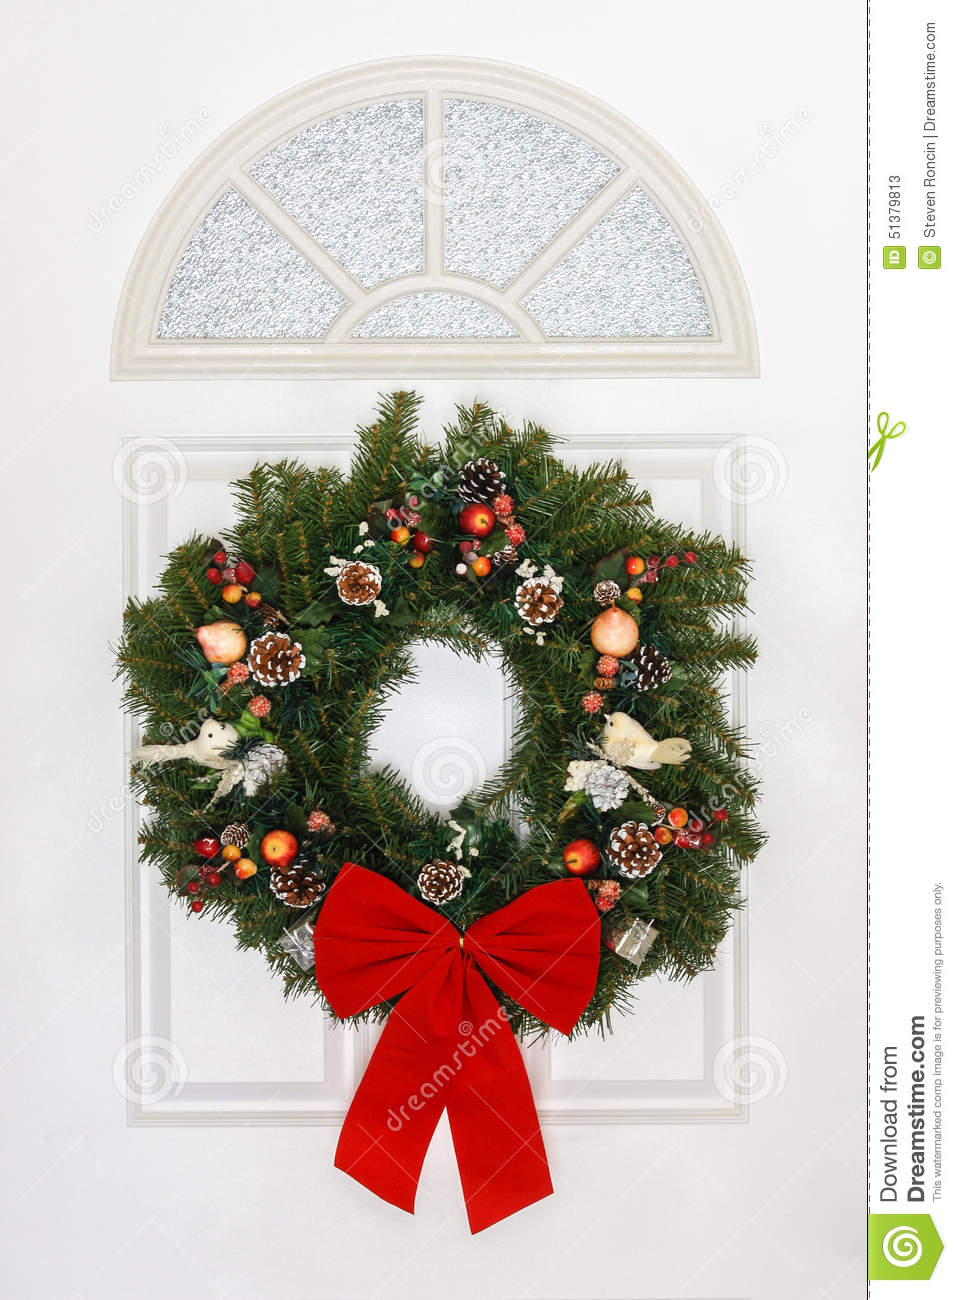 Pine Christmas Wreath With Red Bow Hanging On White Door Stock Image